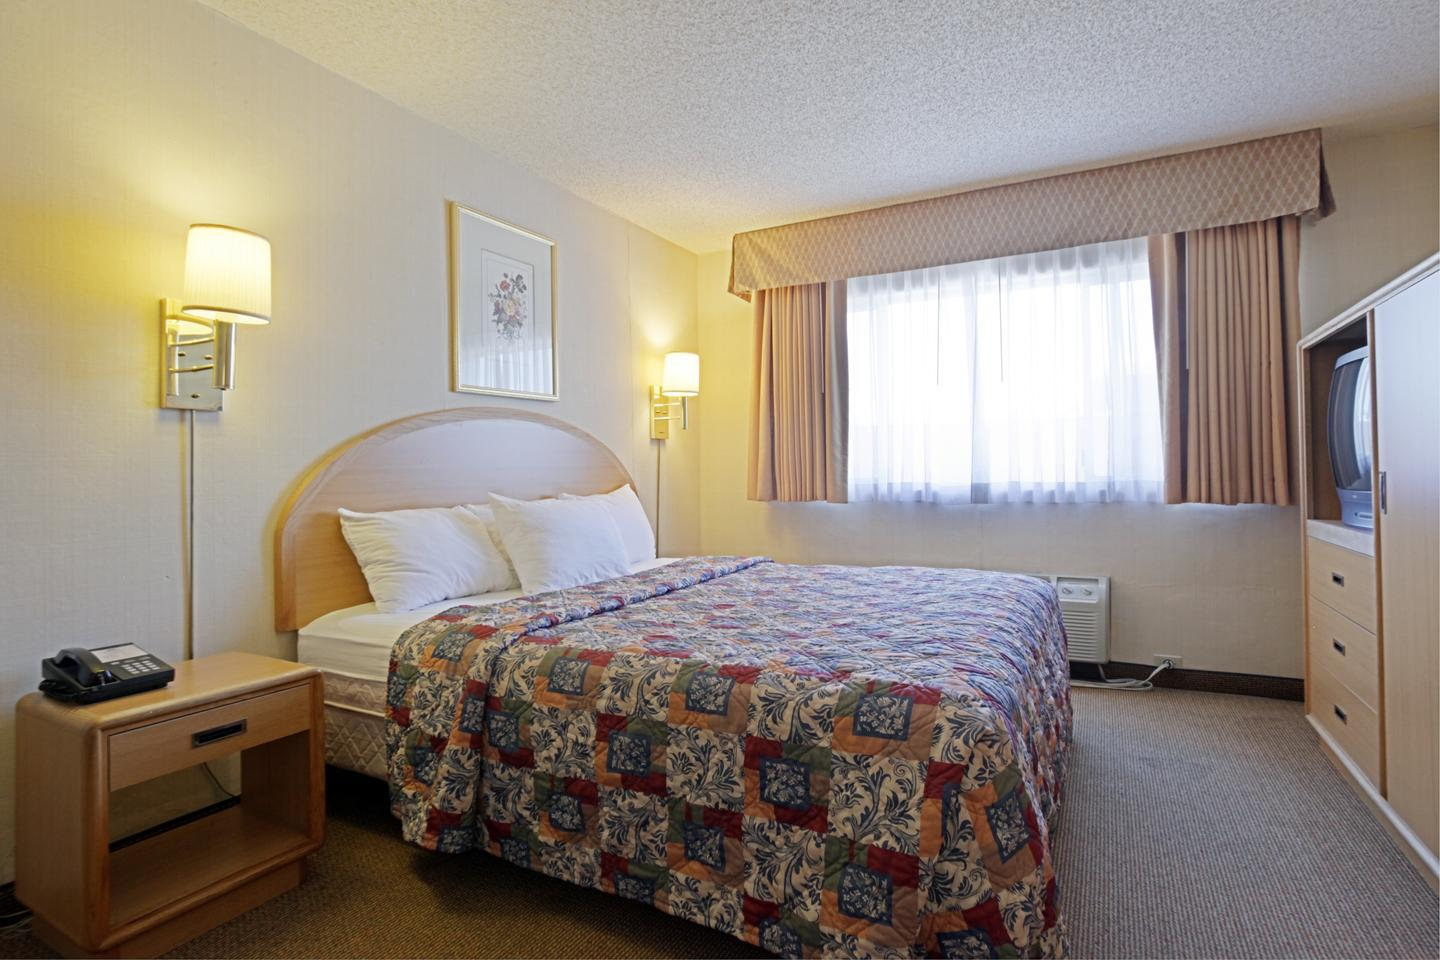 Americas Best Value Inn Visalia image 4